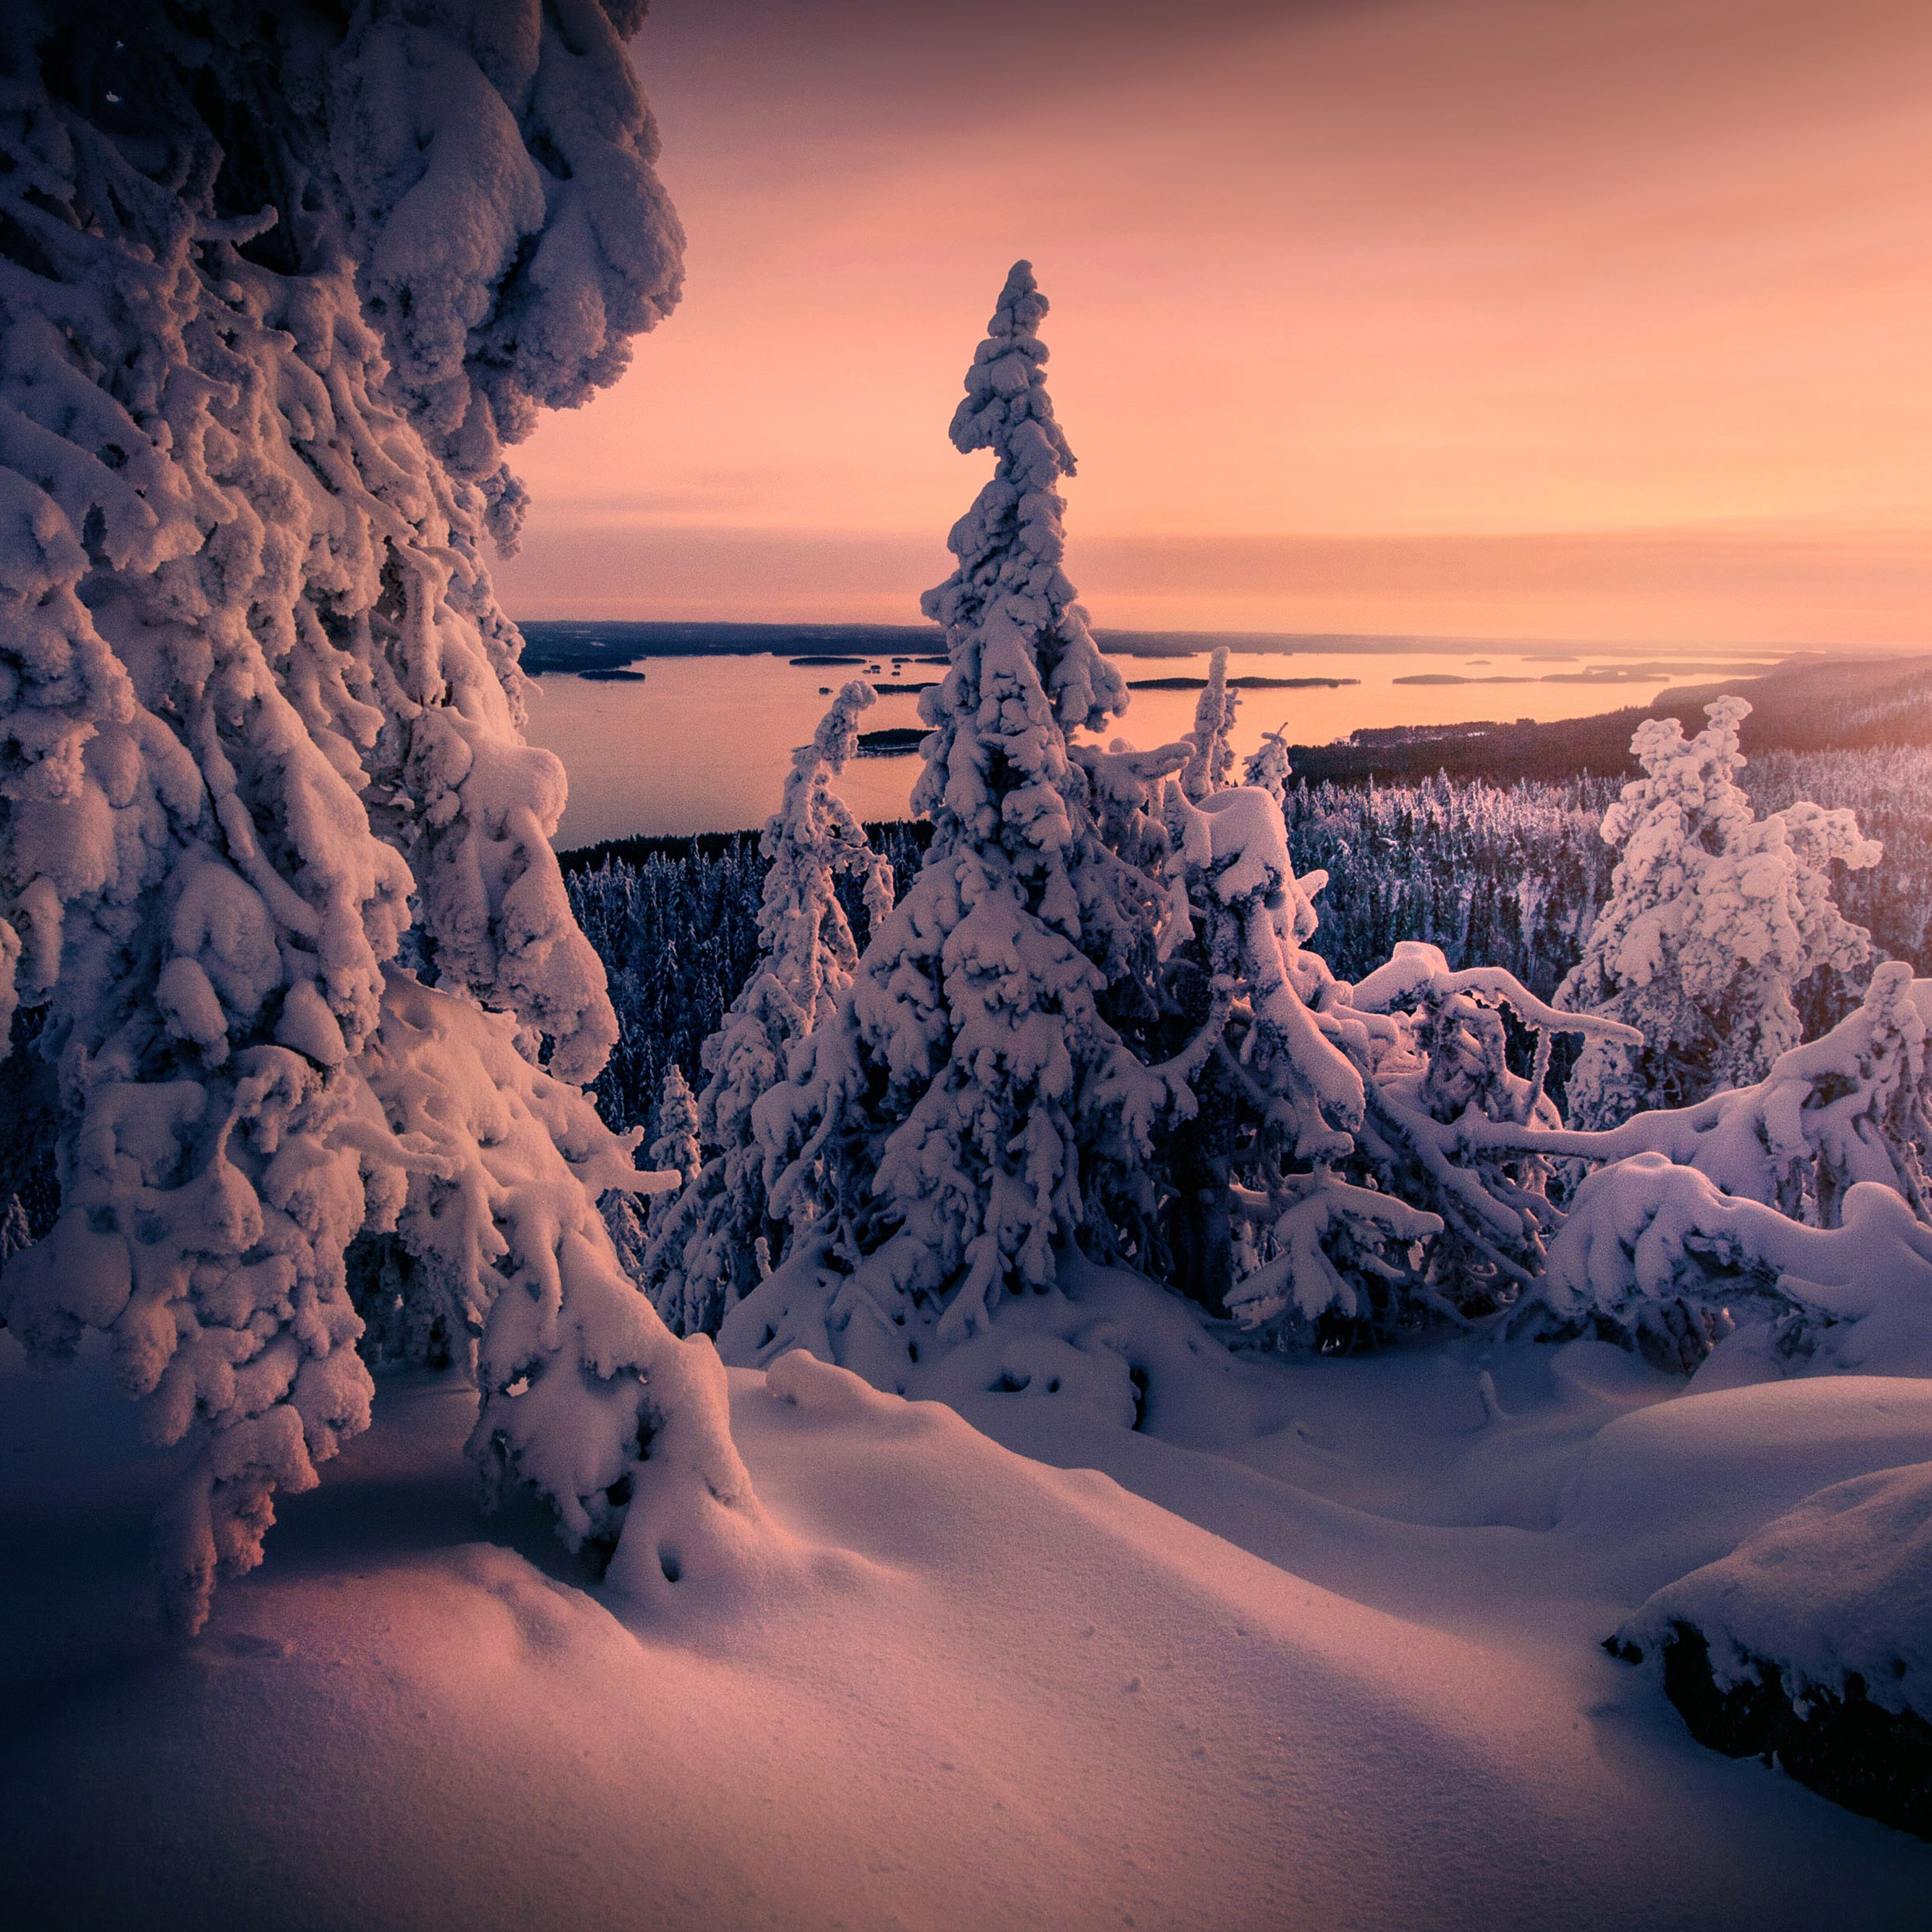 winter snow covered trees 4k wallpapers